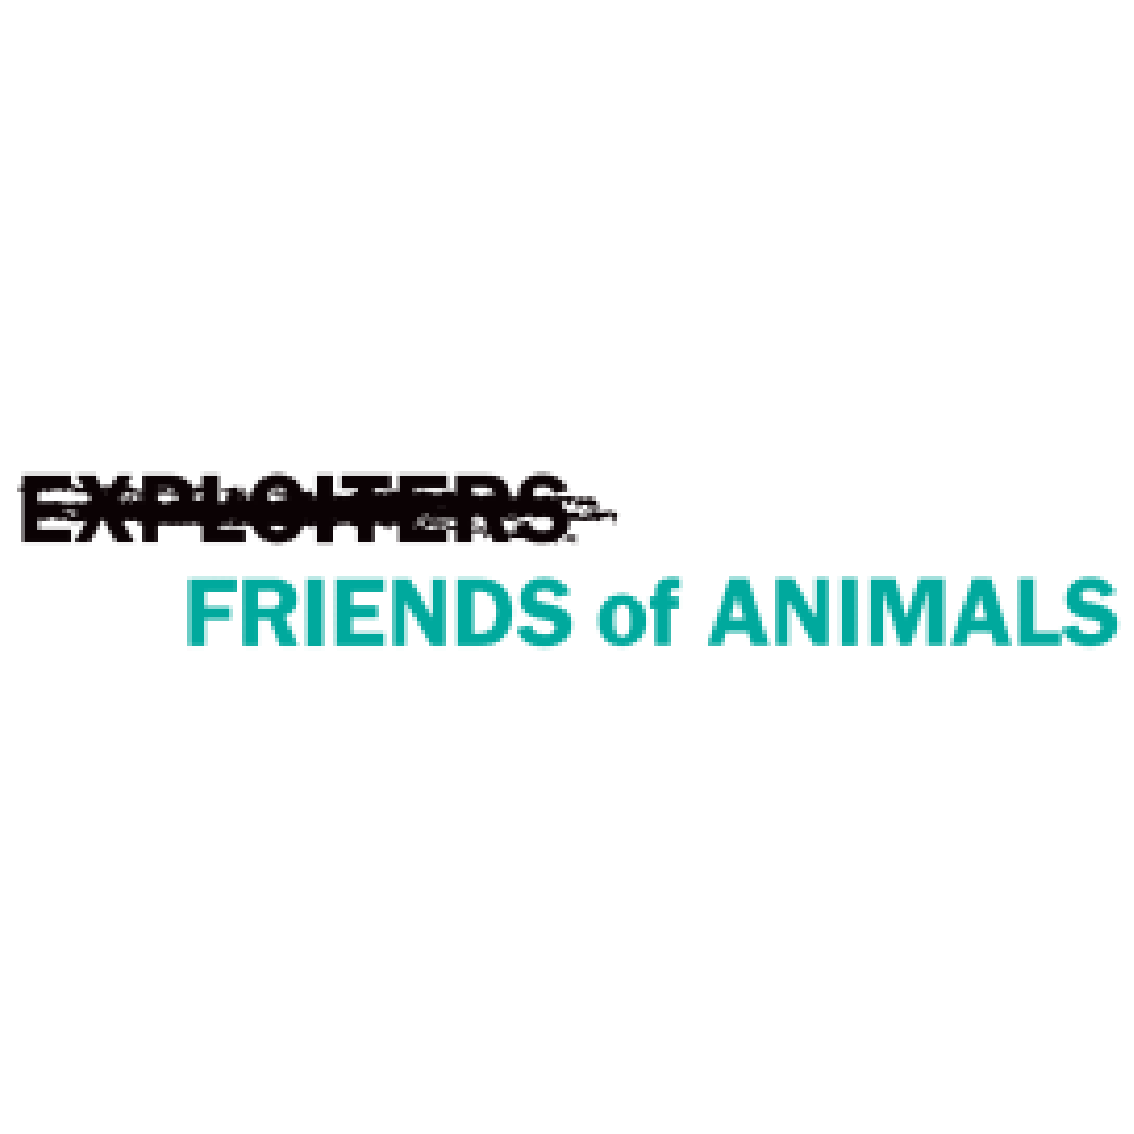 Friends of Animals - Interview with Friends of Animals about Sustainability and Helping Animals.